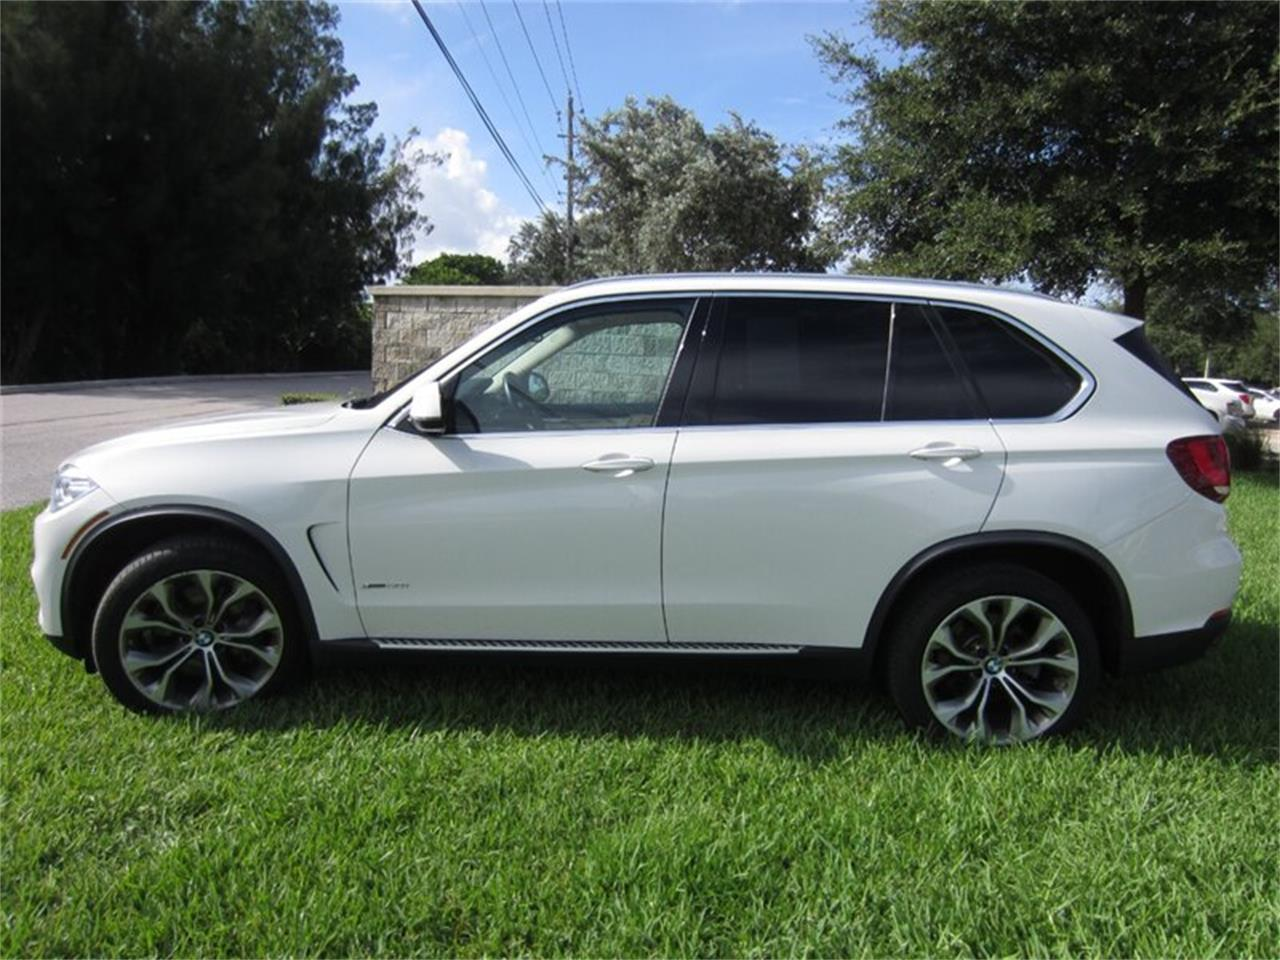 for sale 2016 bmw x5 in delray beach, florida cars - delray beach, fl at geebo